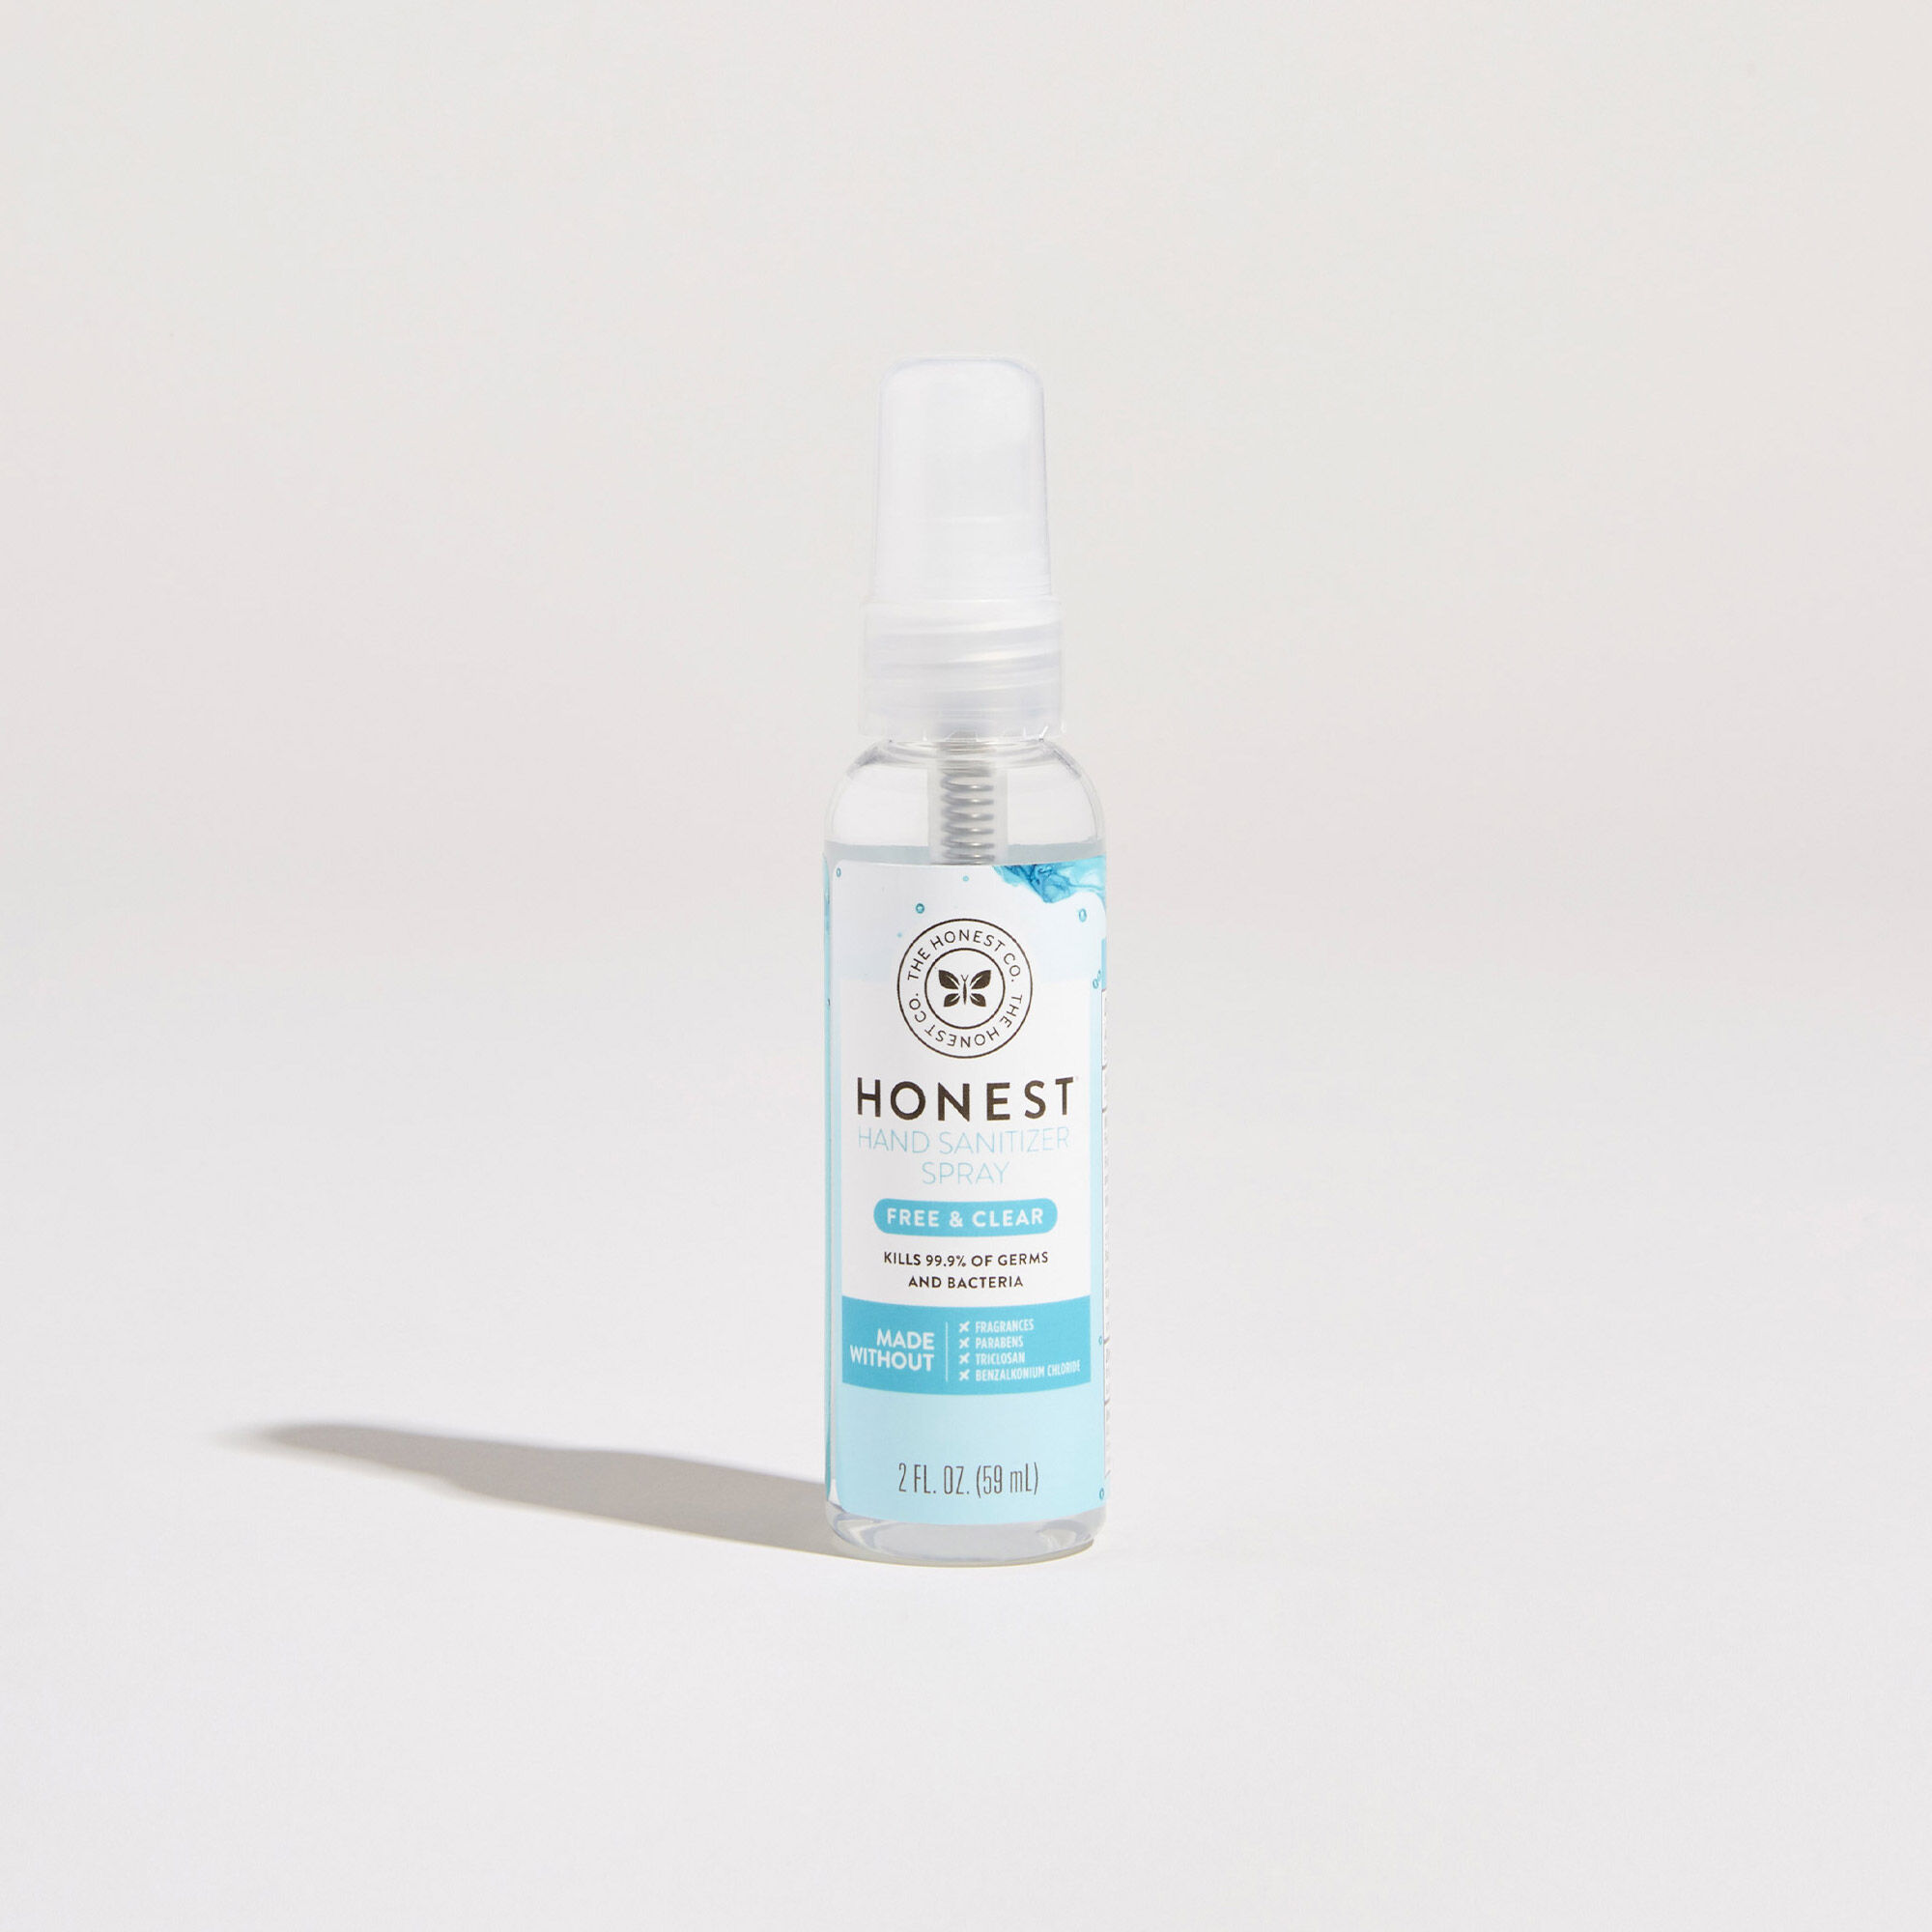 Free and Clear Hand Sanitizer Spray